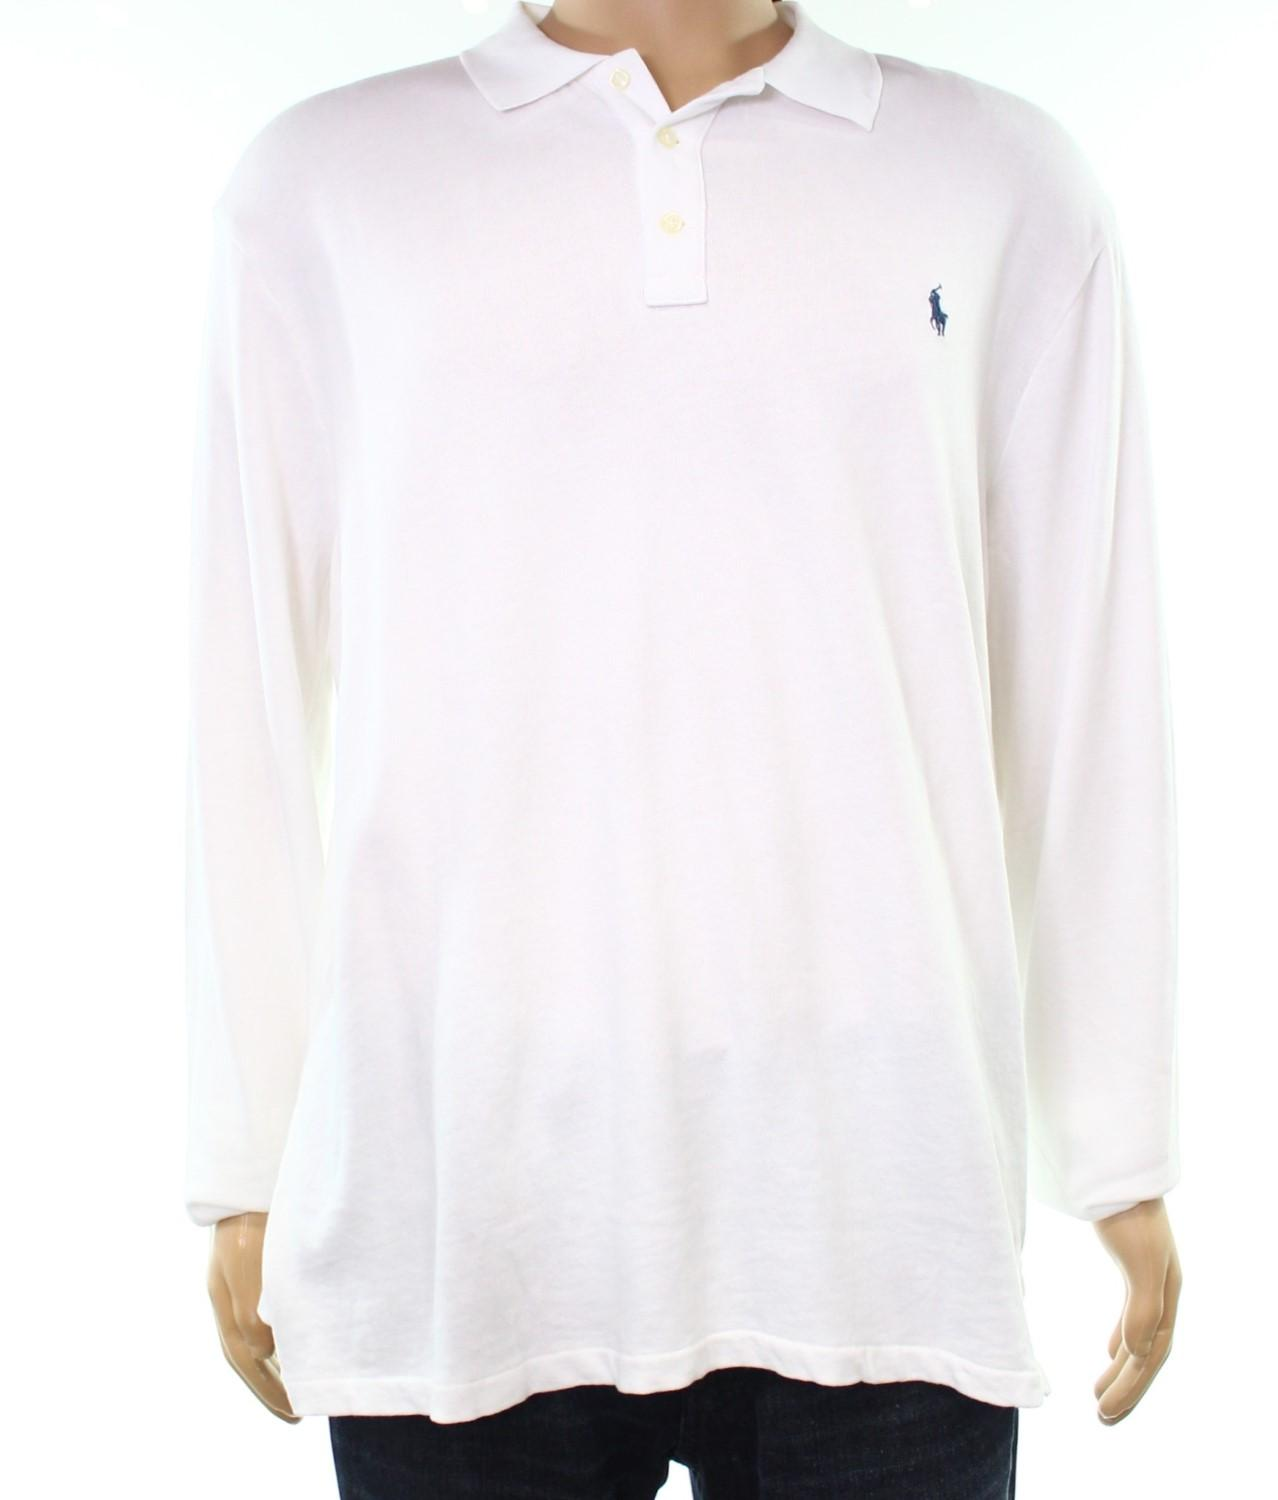 cd9a52abc582 Lyst - Polo Ralph Lauren French Terry Long Sleeves Polo Shirt in ...